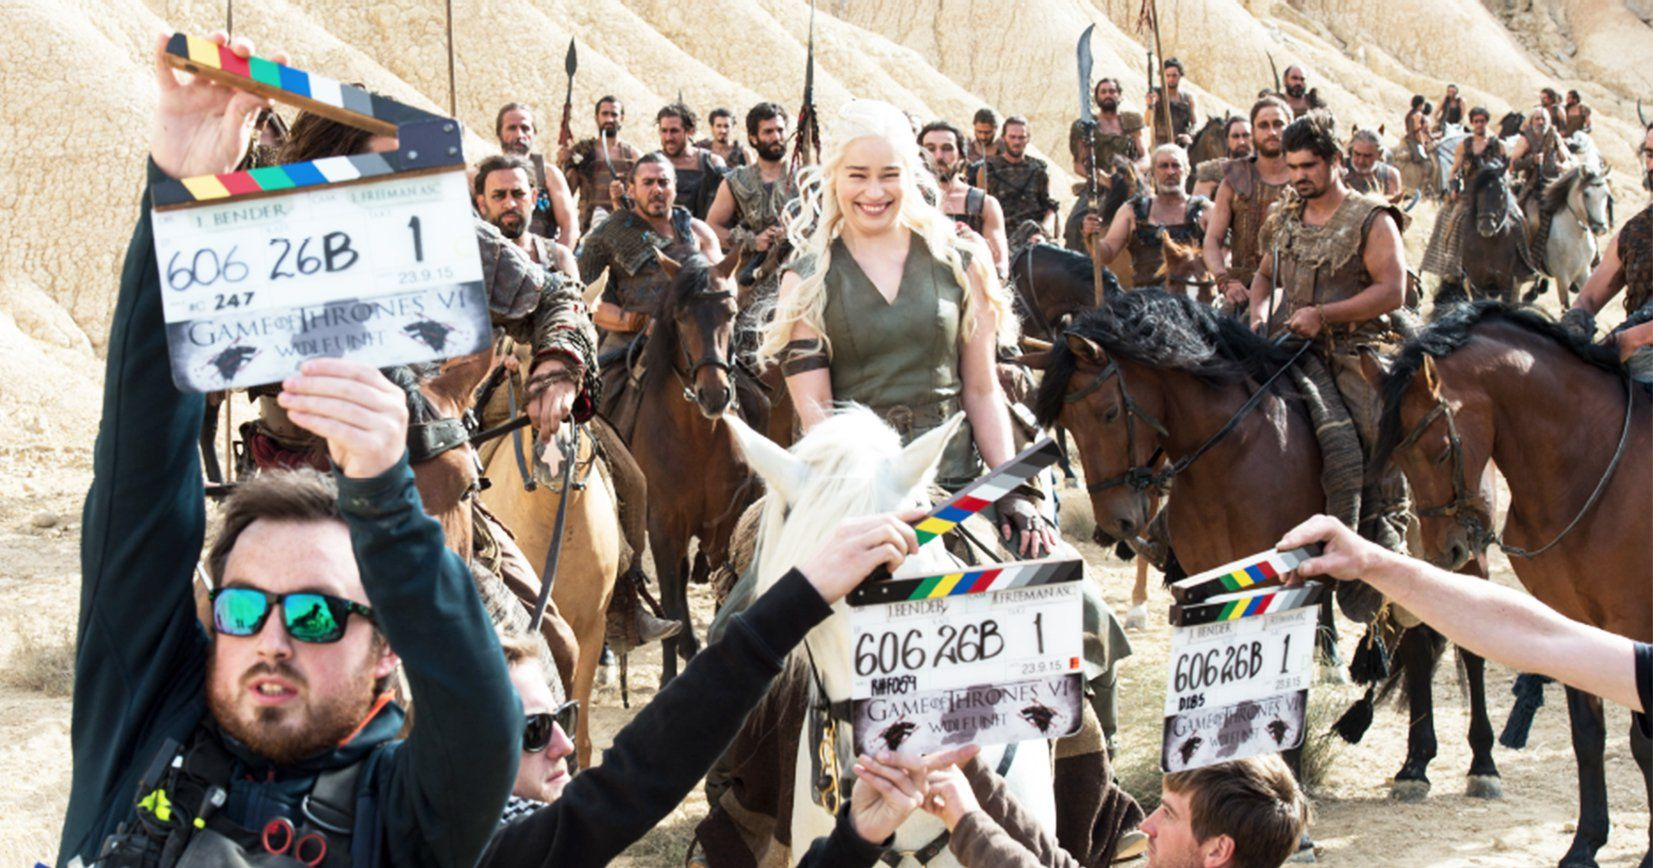 Meet the OnSet Photographers of 'Game of Thrones' Game